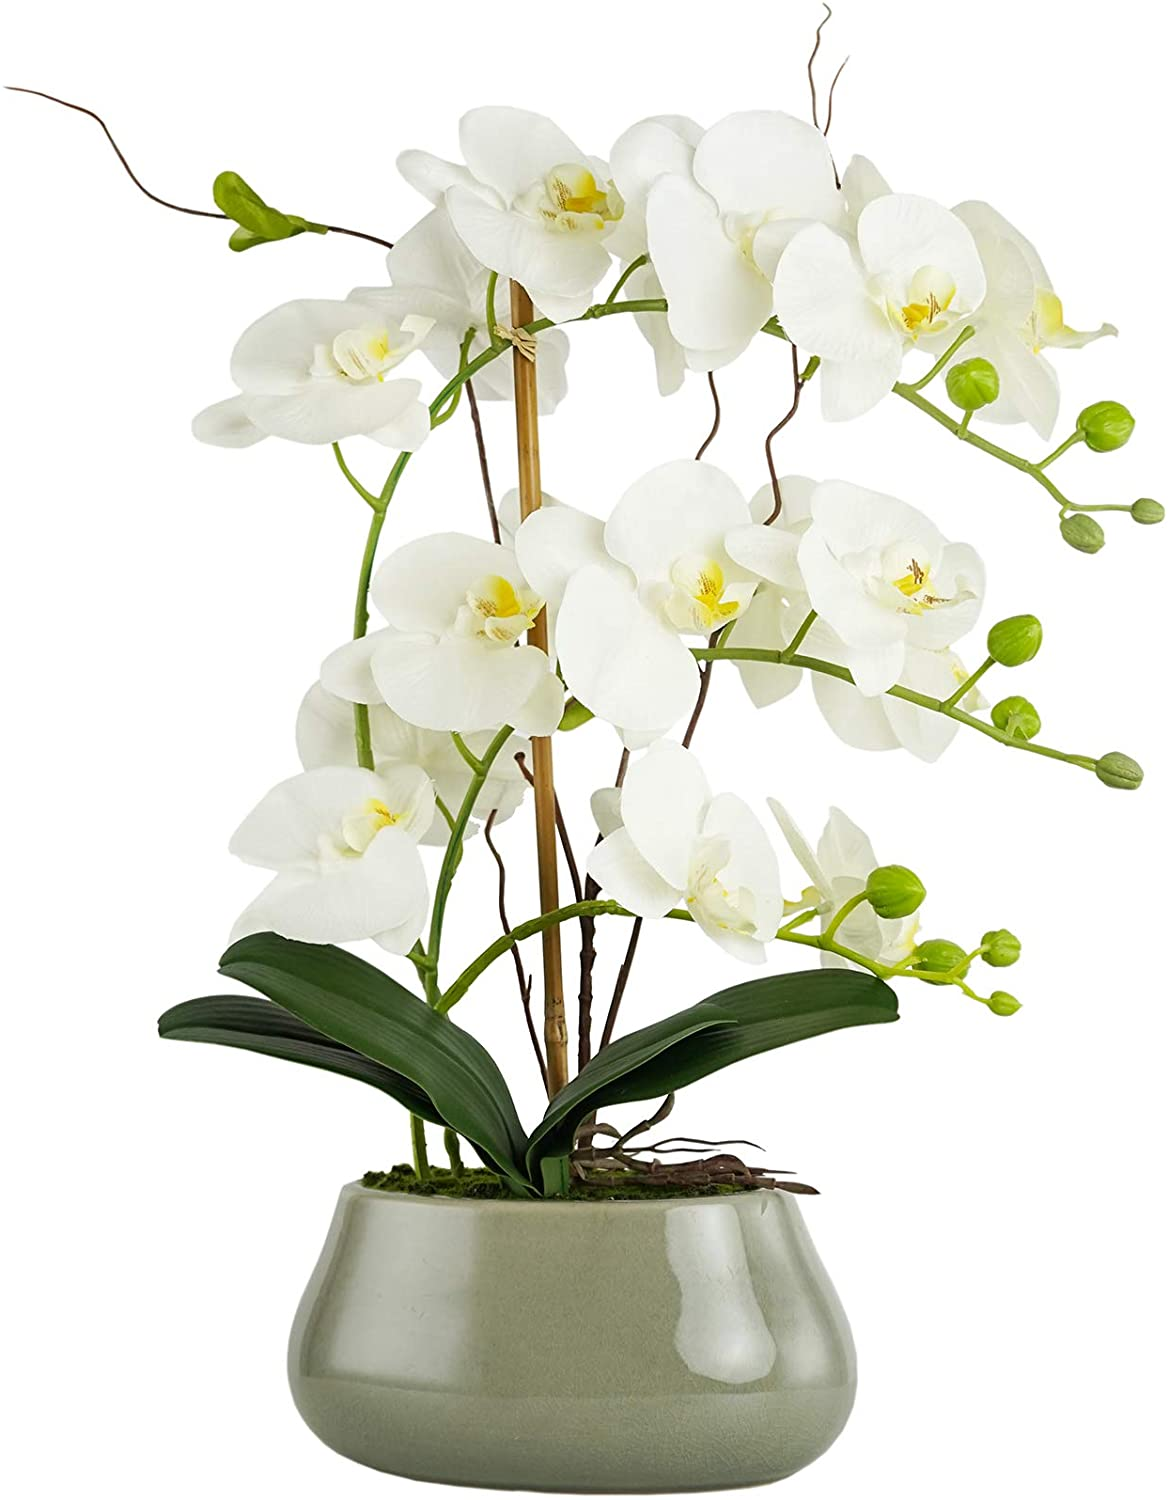 Artificial Plants Faux Flowers in Ceramic Vase Phalaenopsis White Orchids Flowers, Fake Orchid Artificial Flowers for Decoration Home Office Party Table Decor